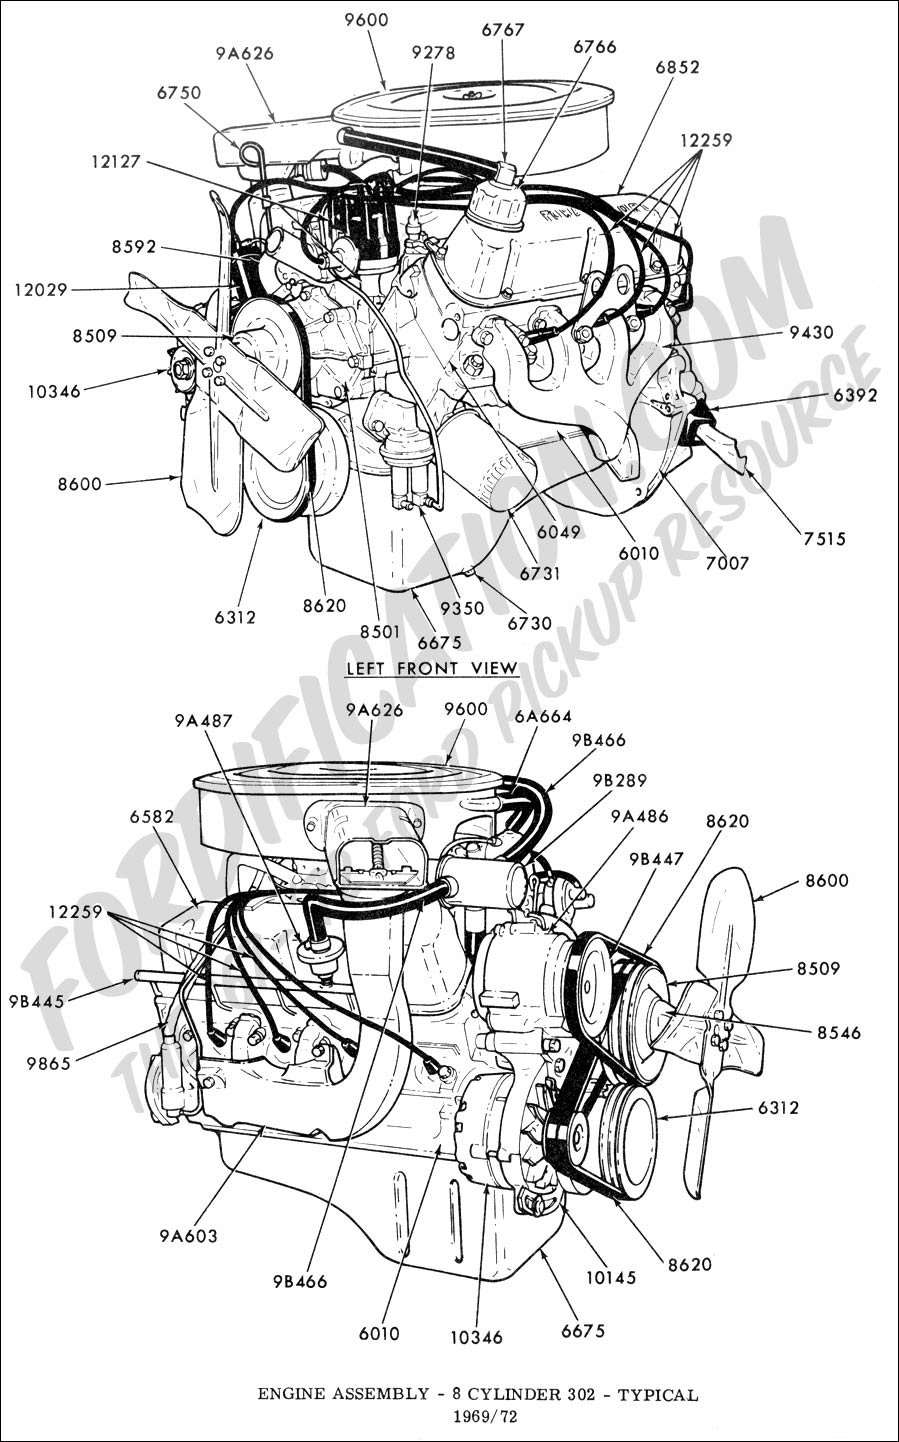 diagram of 1973 ford 302 engine data wiring diagrams u2022 rh naopak co 2001 ford f250 engine diagram 1995 Ford Taurus Engine Diagram